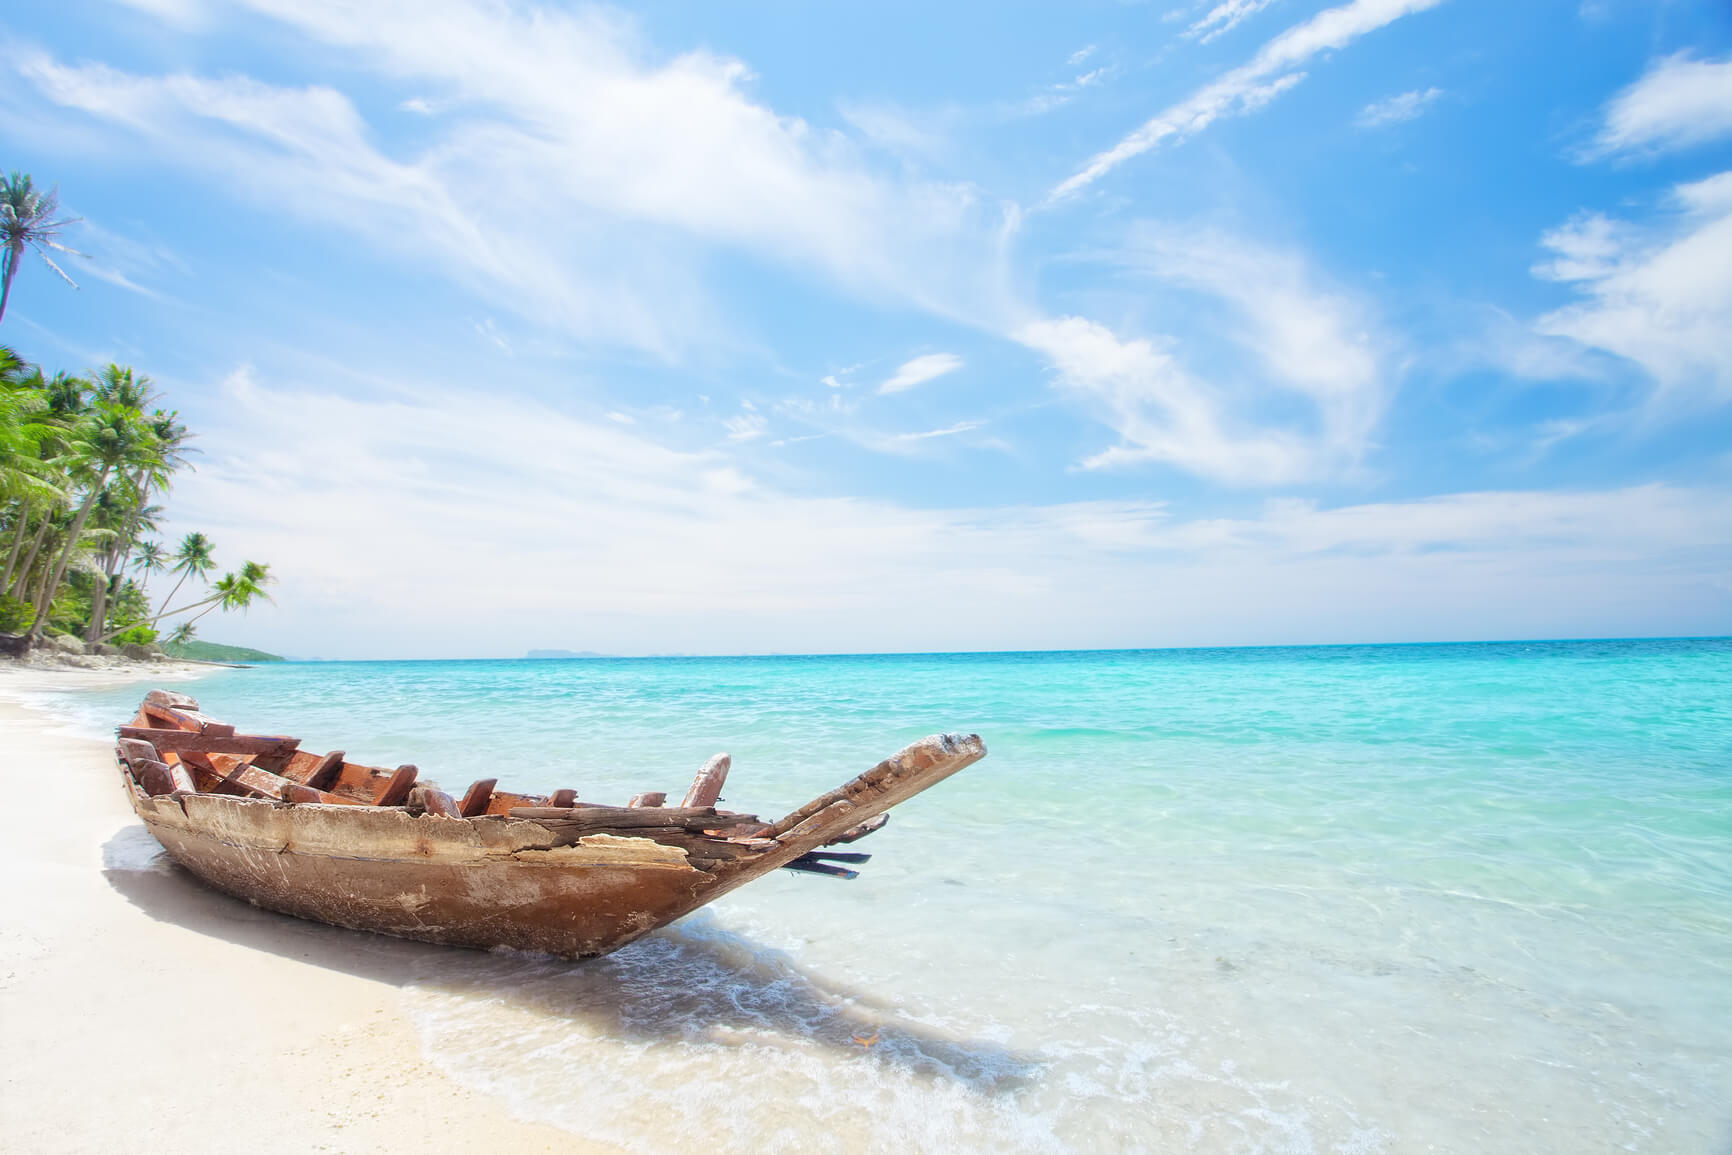 Non-stop from Milan, Italy to the Maldives for only €350 roundtrip